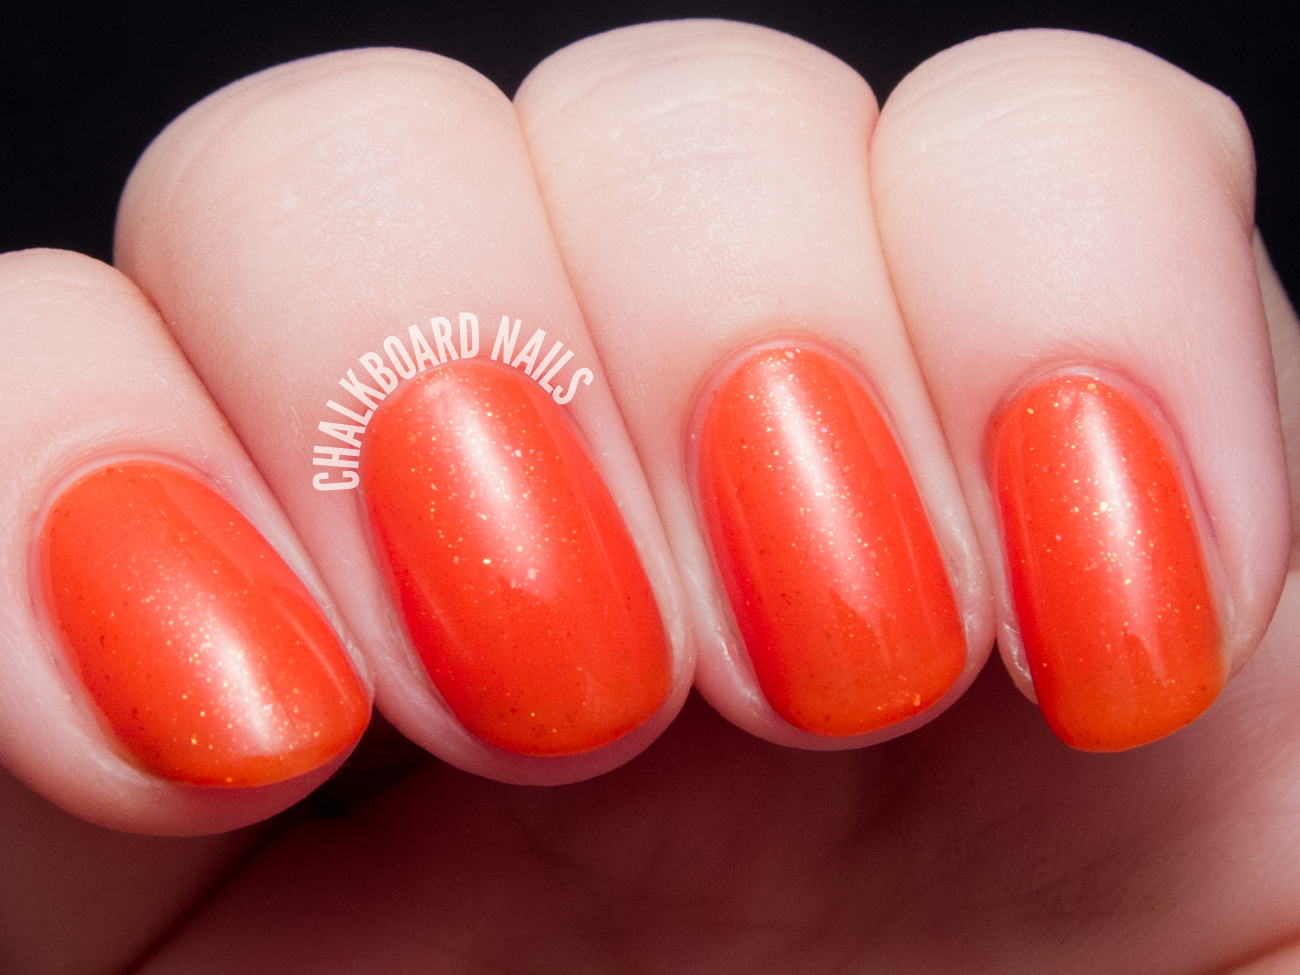 Contrary Polish Valencia Orange via @chalkboardnails